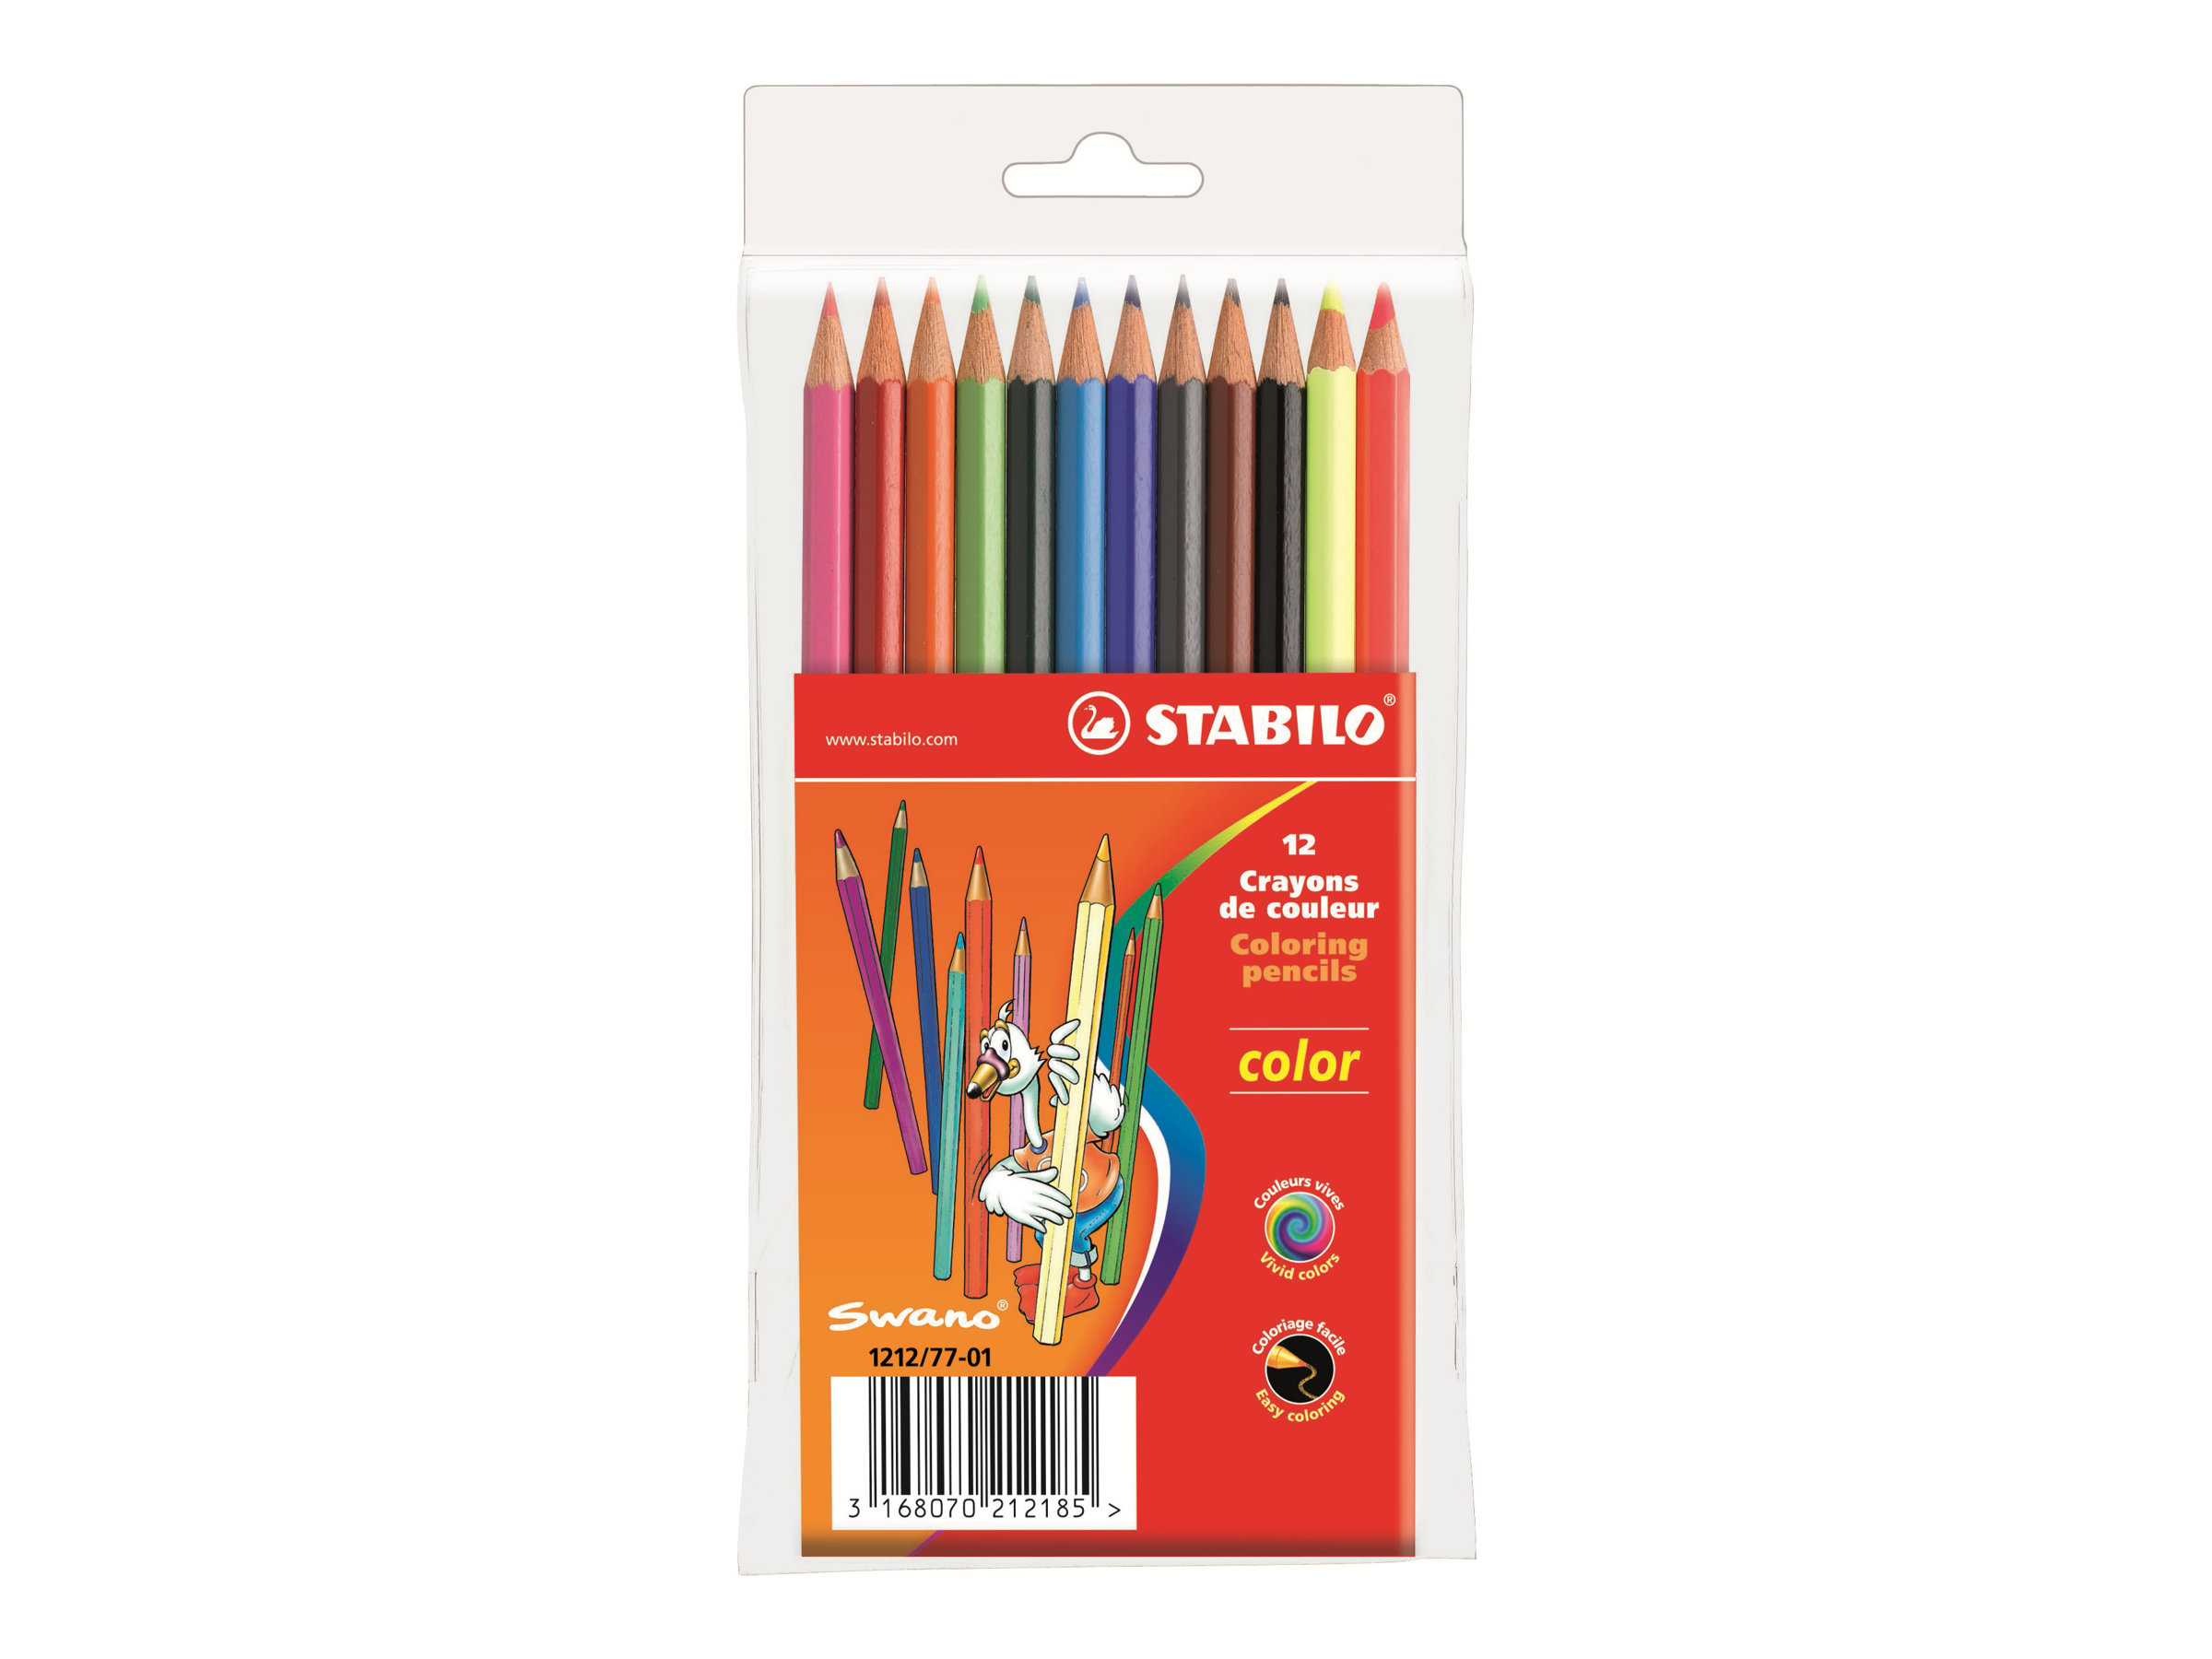 Stabilo Color 12 Crayon De Couleurs Couleurs Assorties